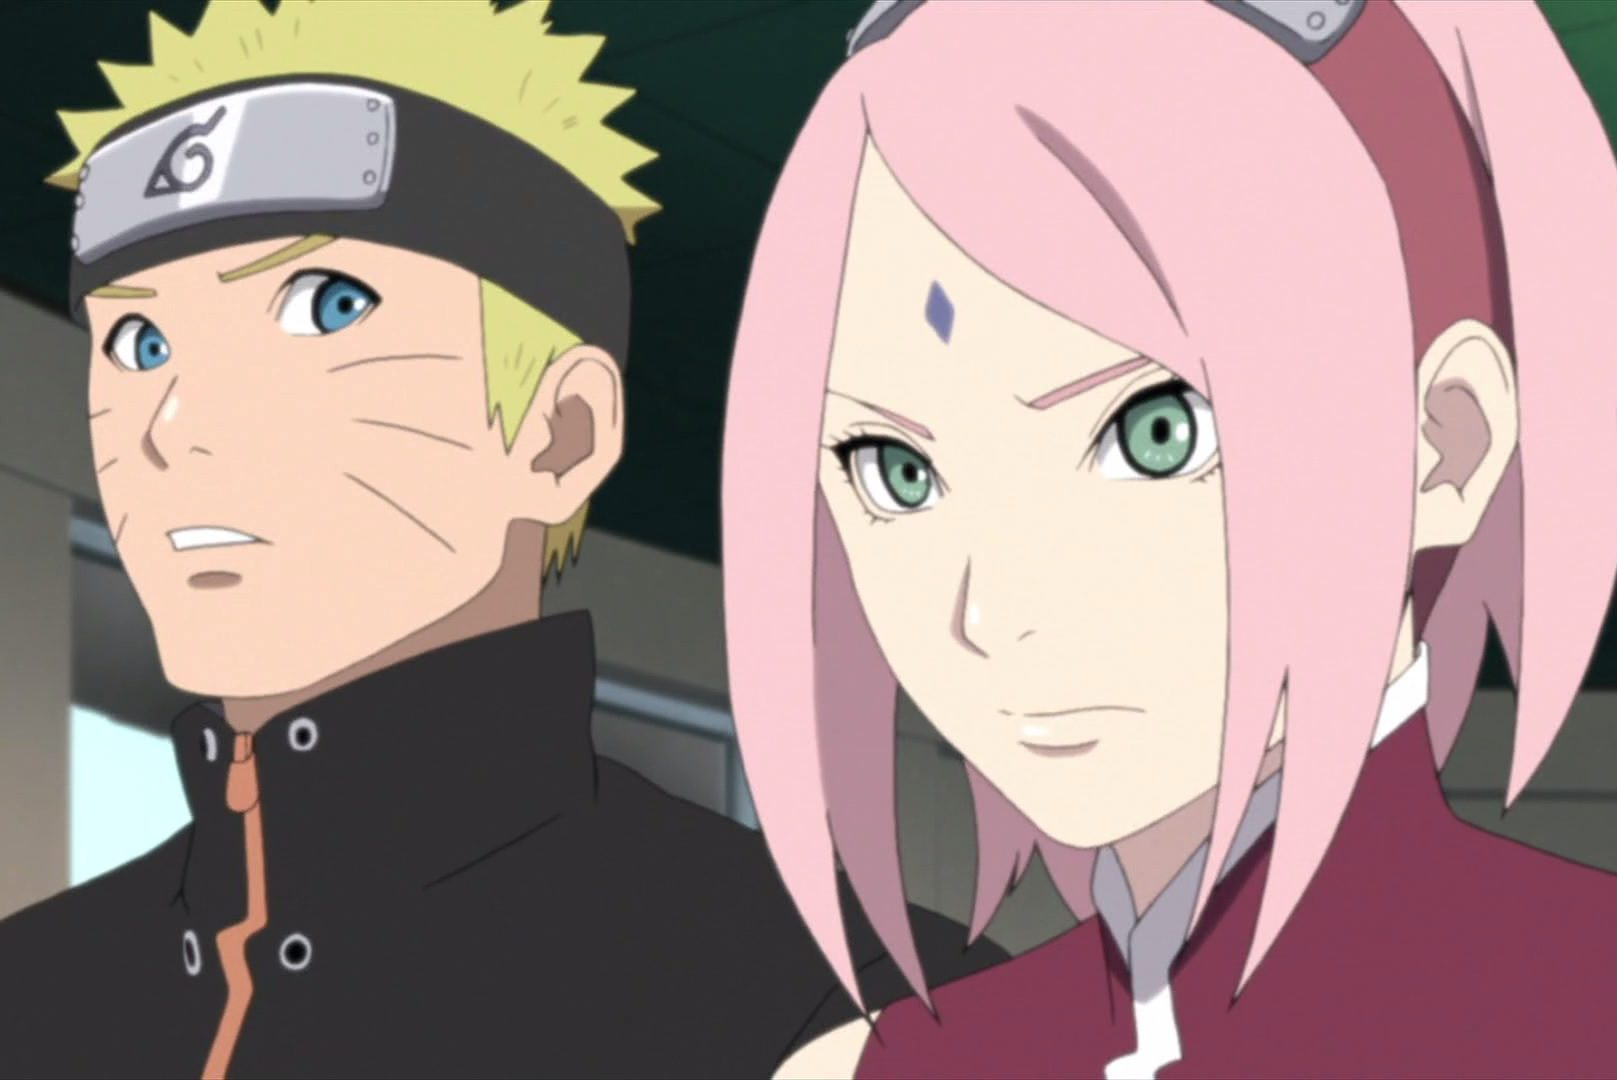 Naruto Leaves Fans Wanting More Character Development From Sakura